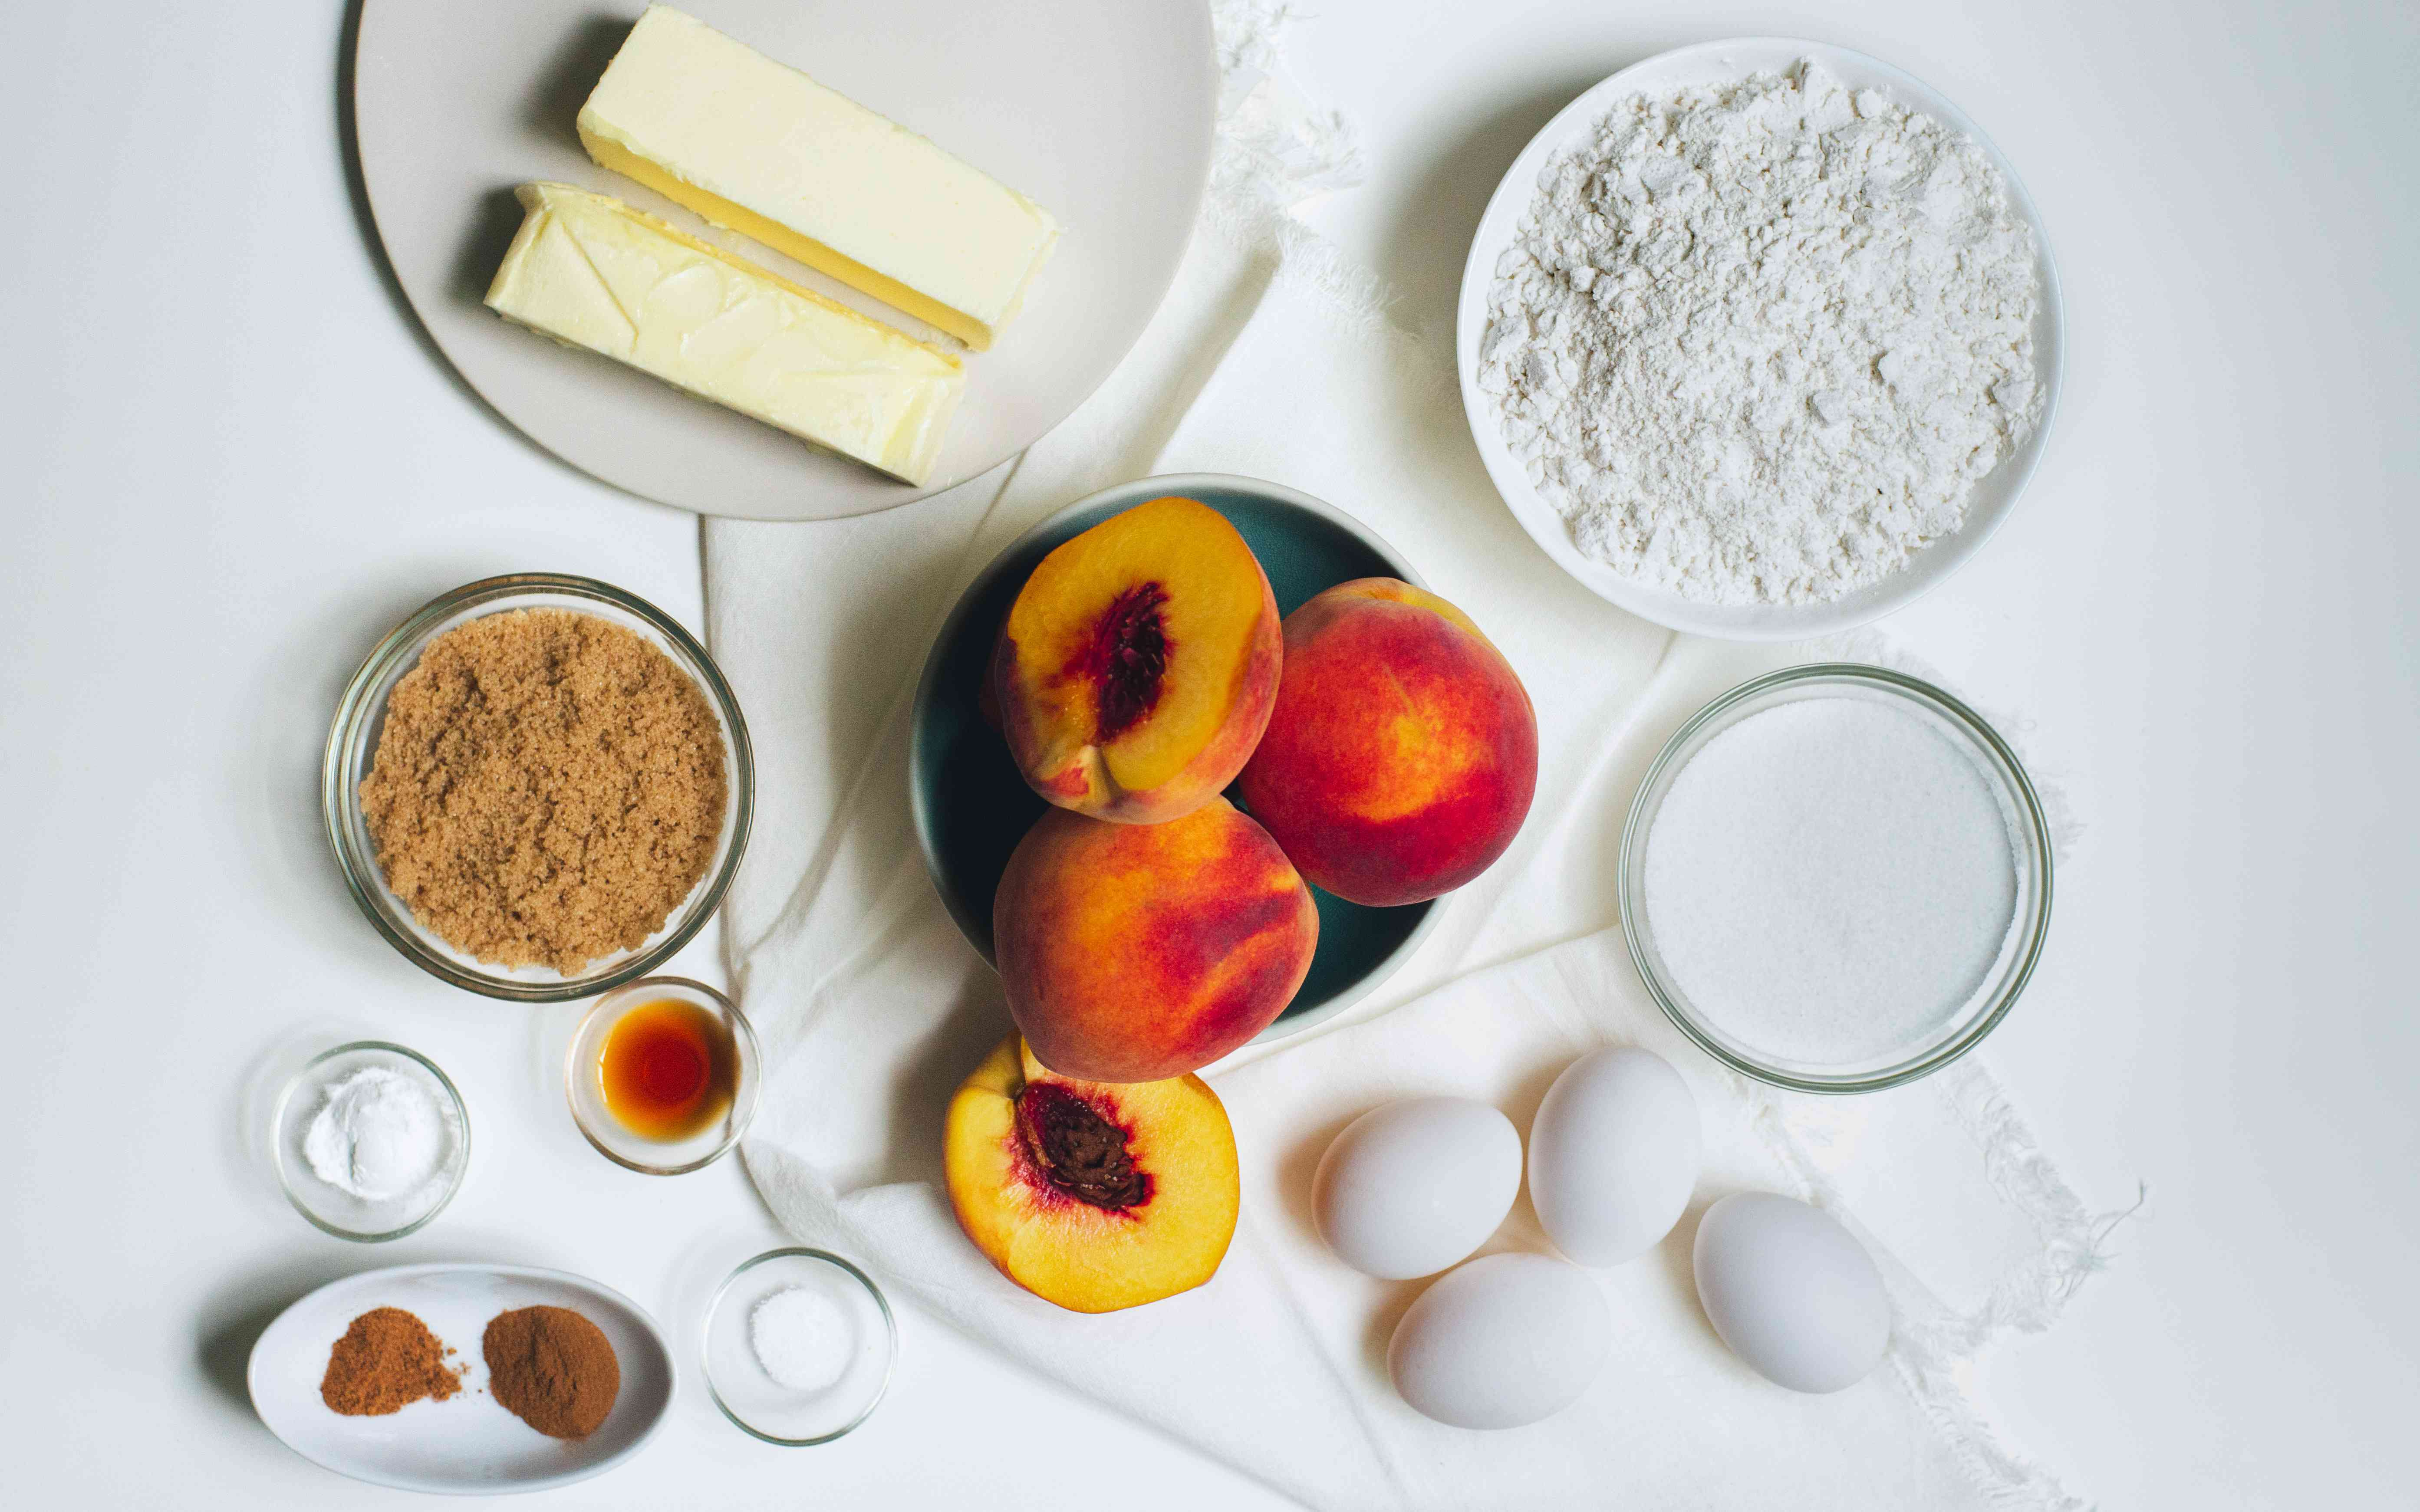 Ingredients for Peach Cobbler Pound Cake